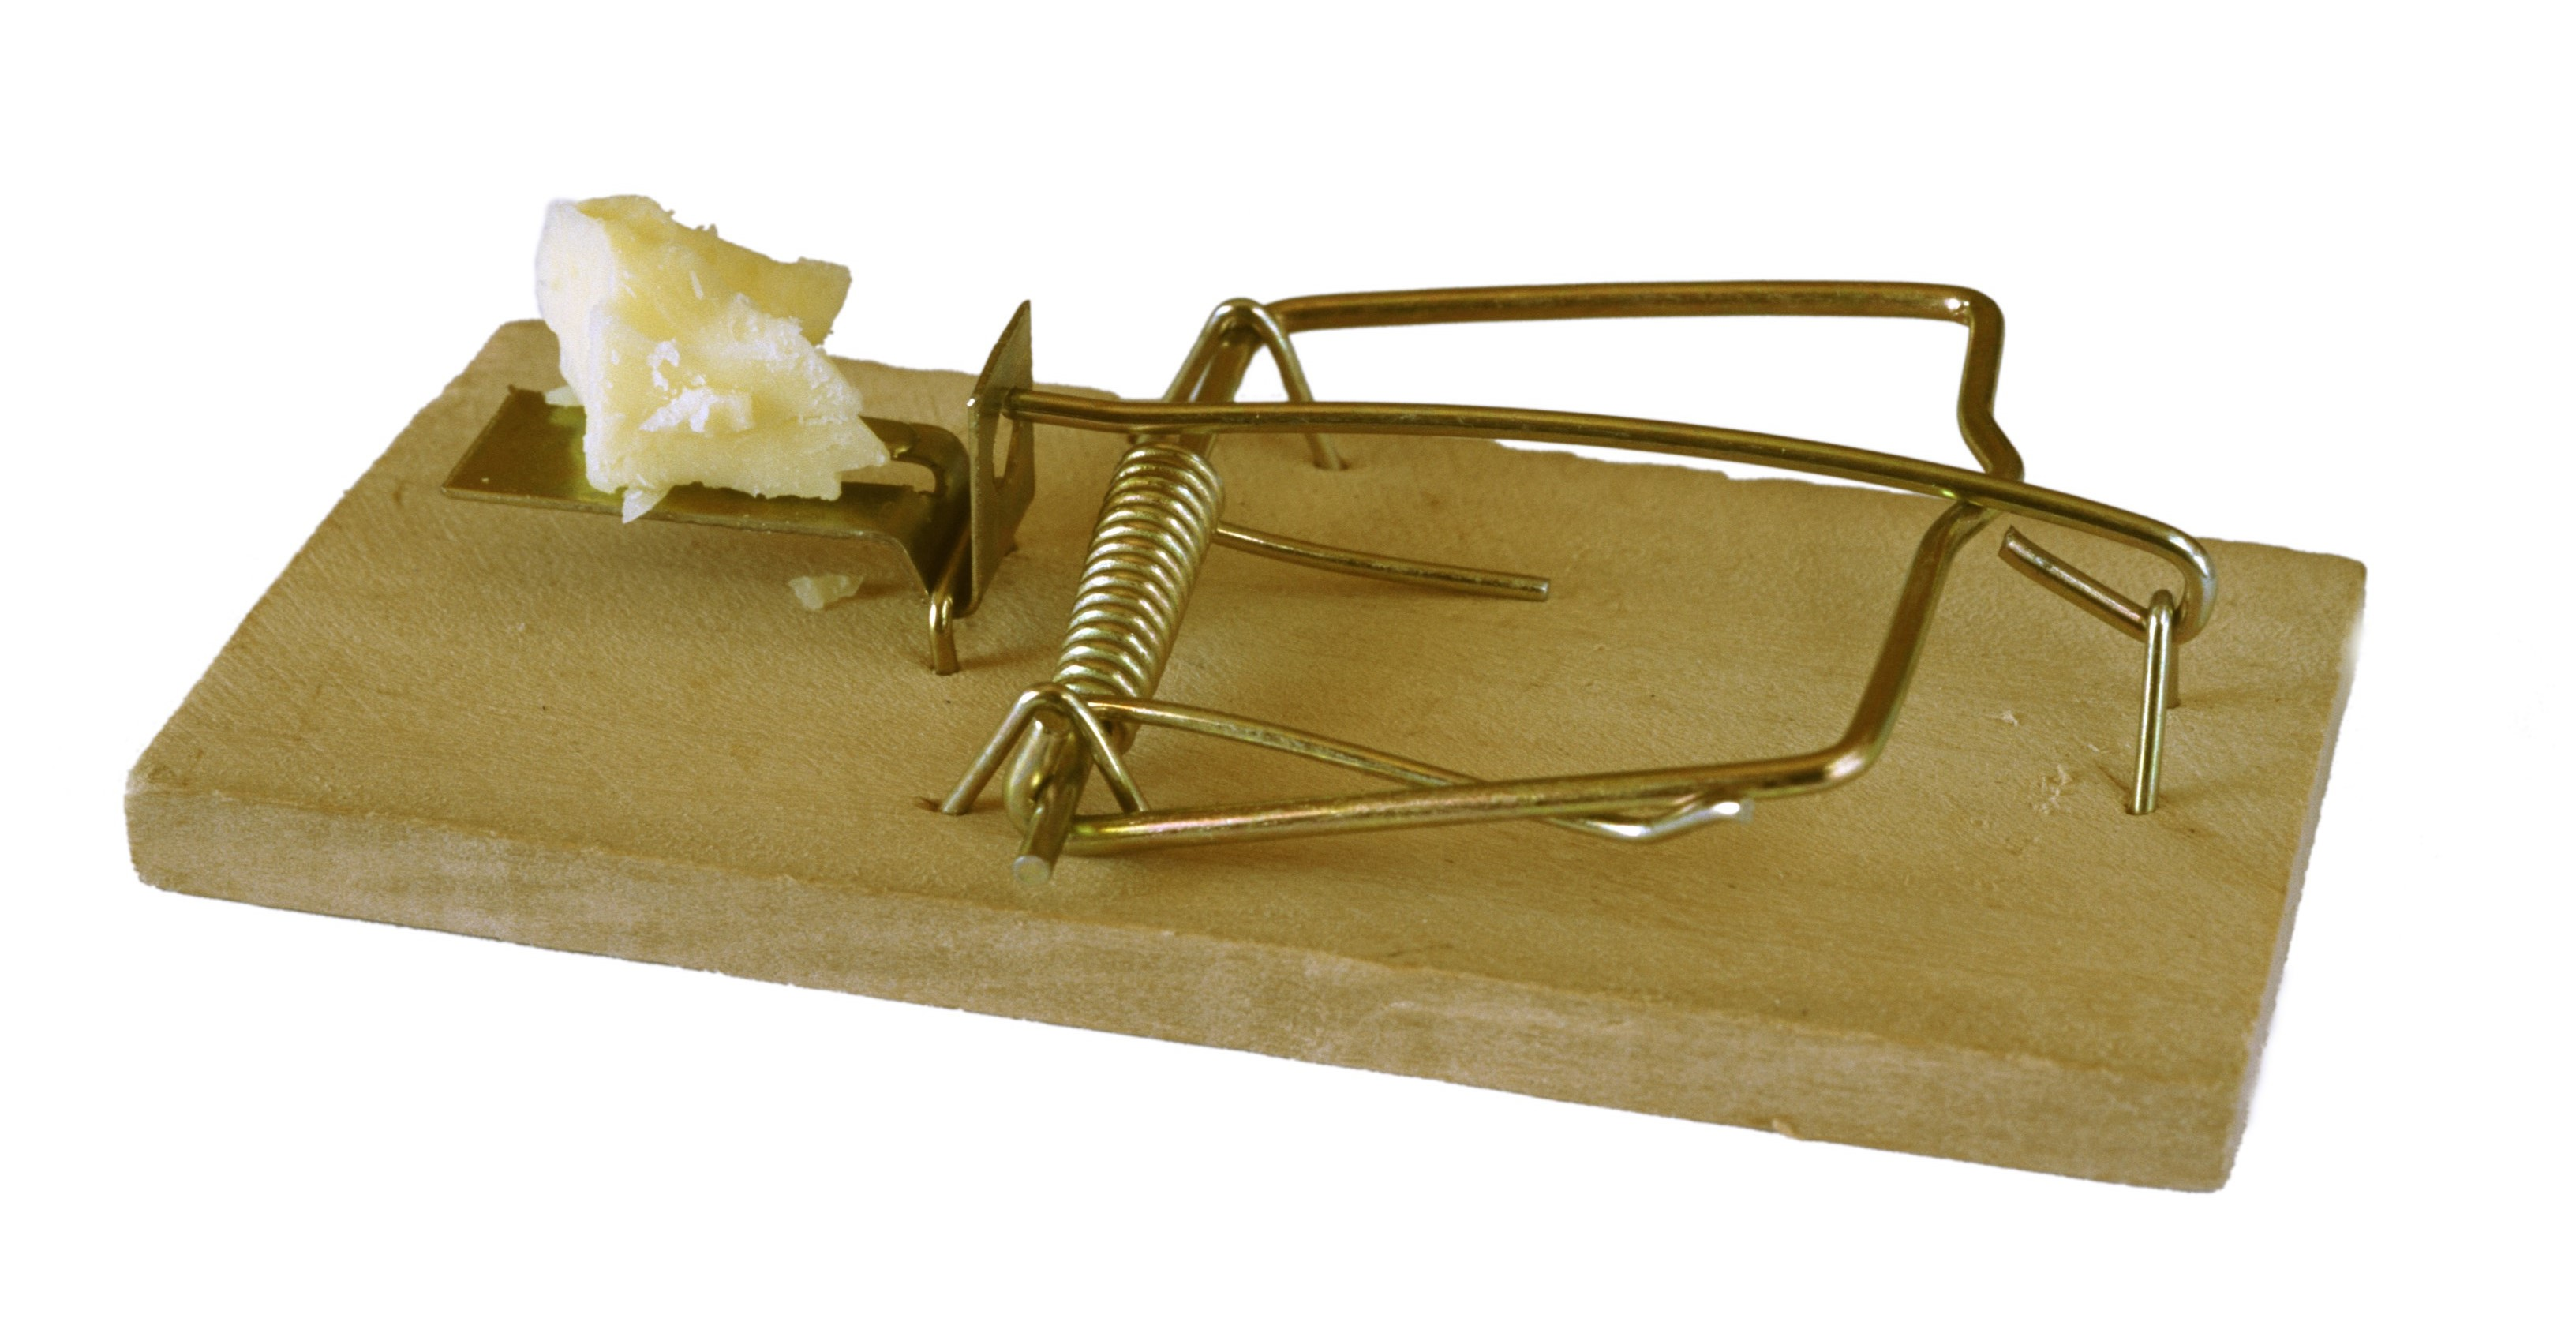 Empty spring loaded mousetrap set ready with a small portion of cheese as bait to catch vermin isolated on white